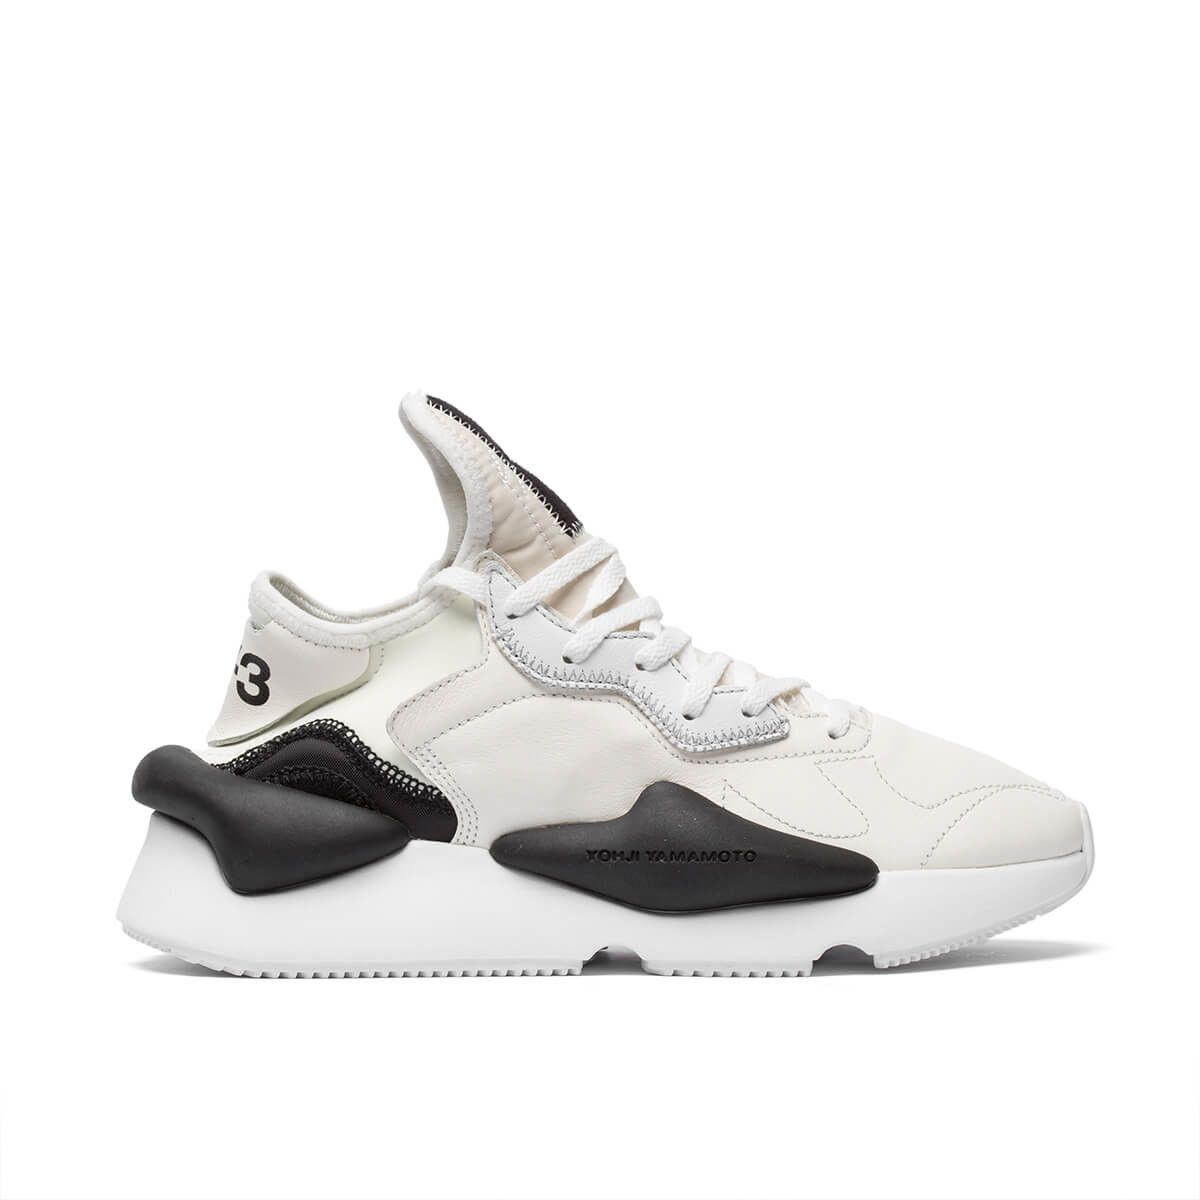 72891308e47 Kaiwa sneakers from the Pre-Fall 2018 Y-3 by Yohji Yamamoto collection in  white